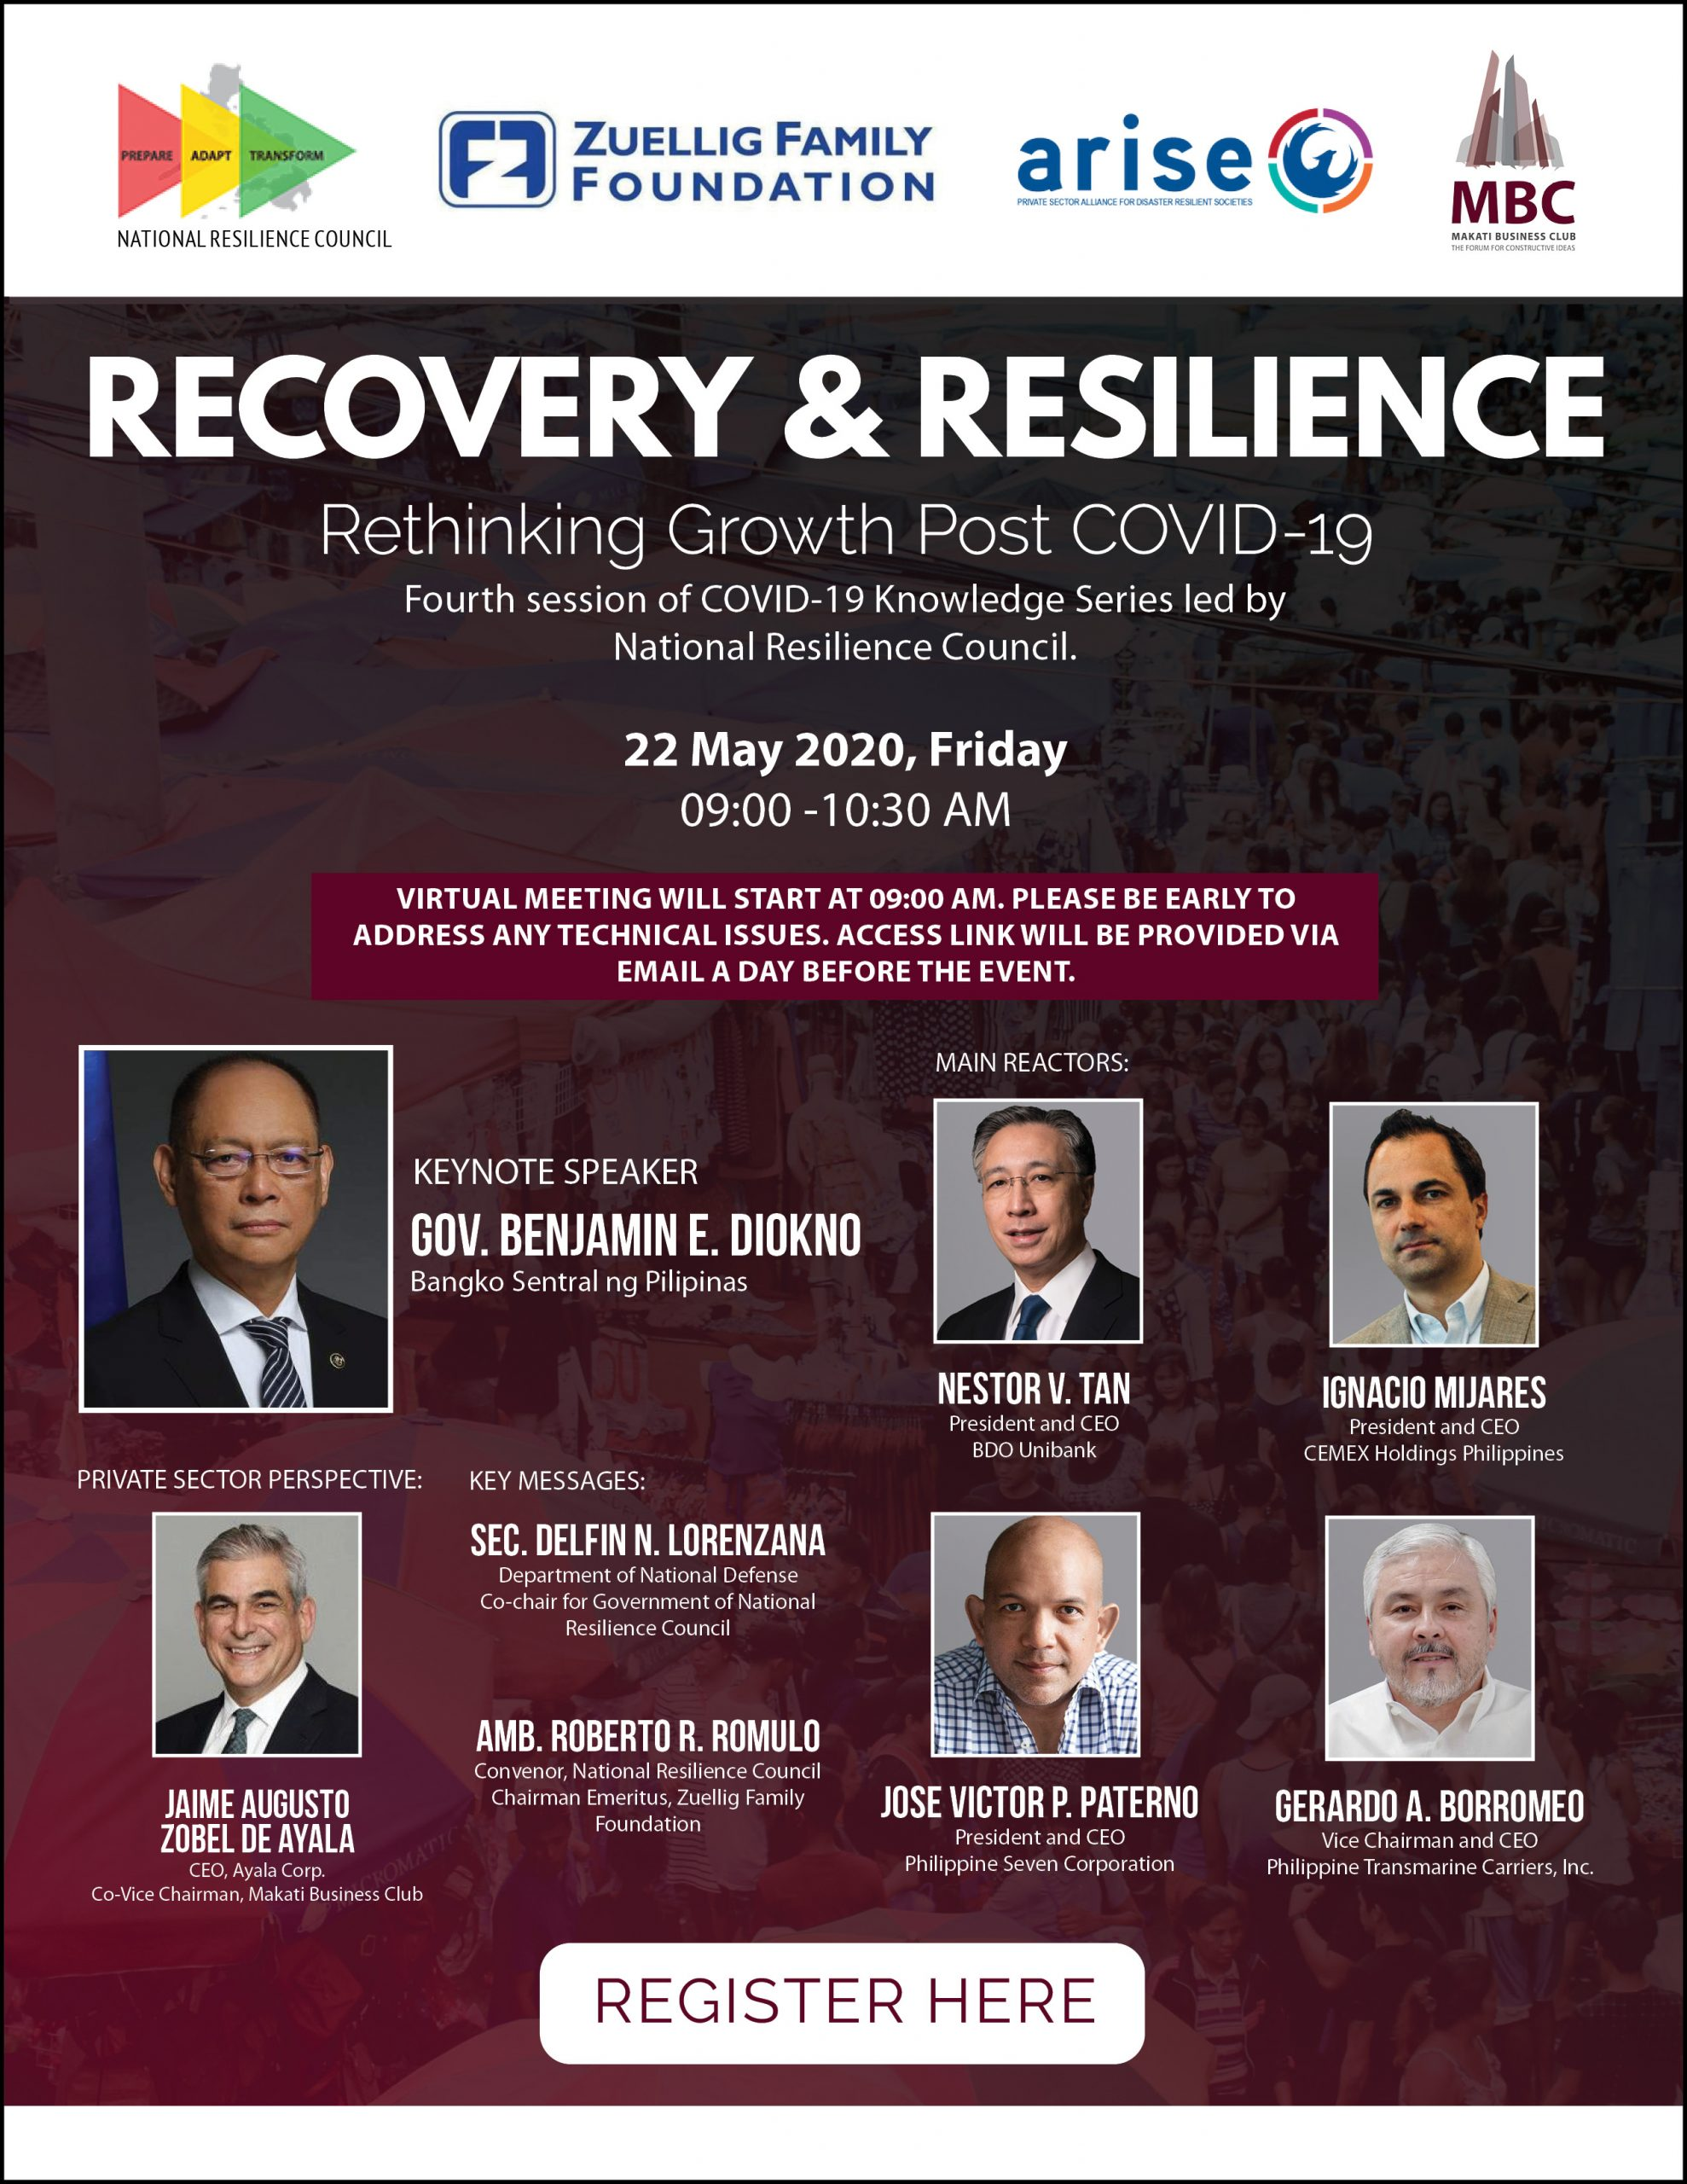 Recovery & Resilience: Rethinking Growth Post COVID-19